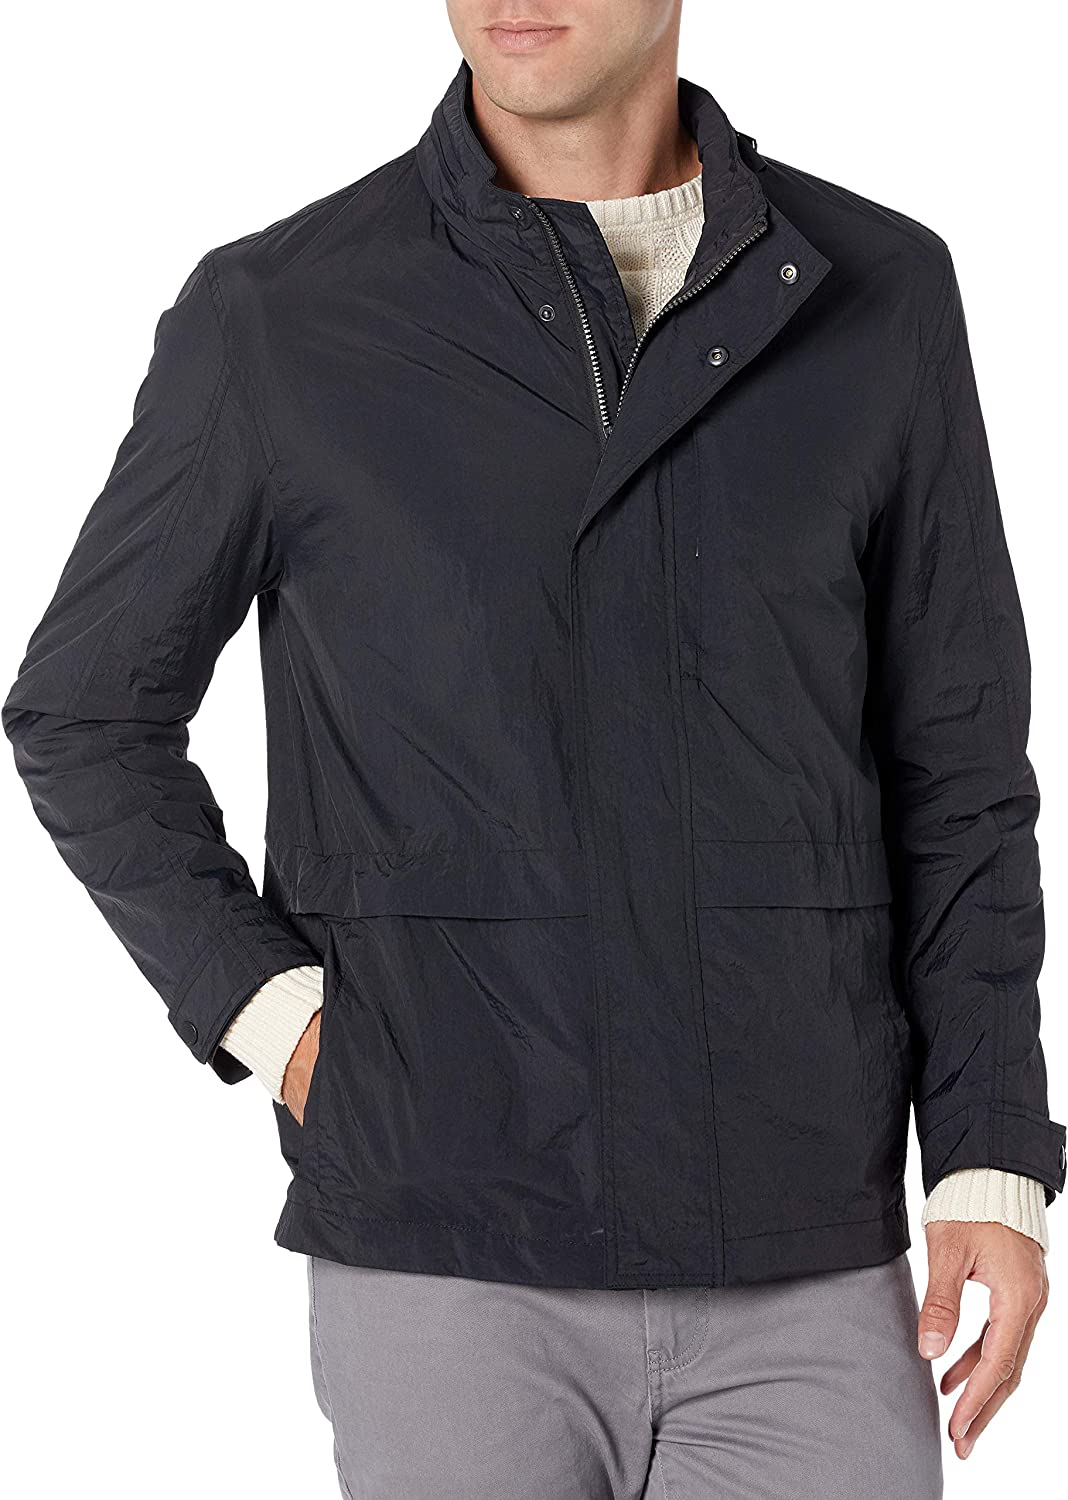 Cole Haan Men's New mail order Grand Series Jacket Packable Crinkle Max 77% OFF Rain